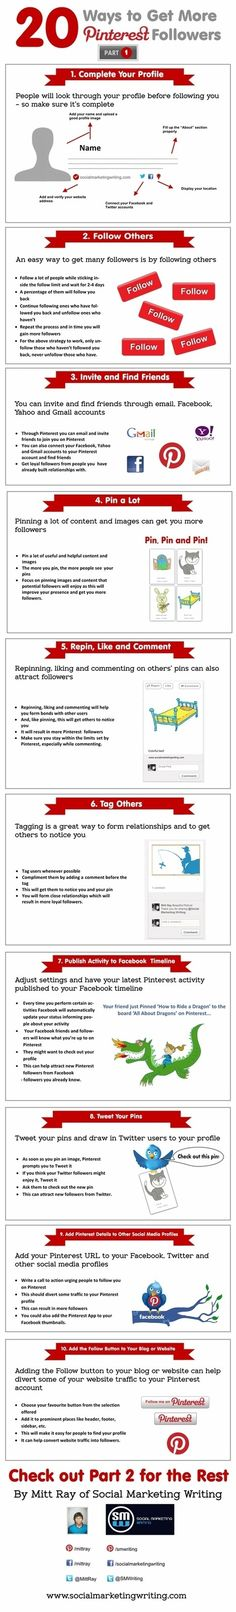 20 ways to get more #Pinterest followers